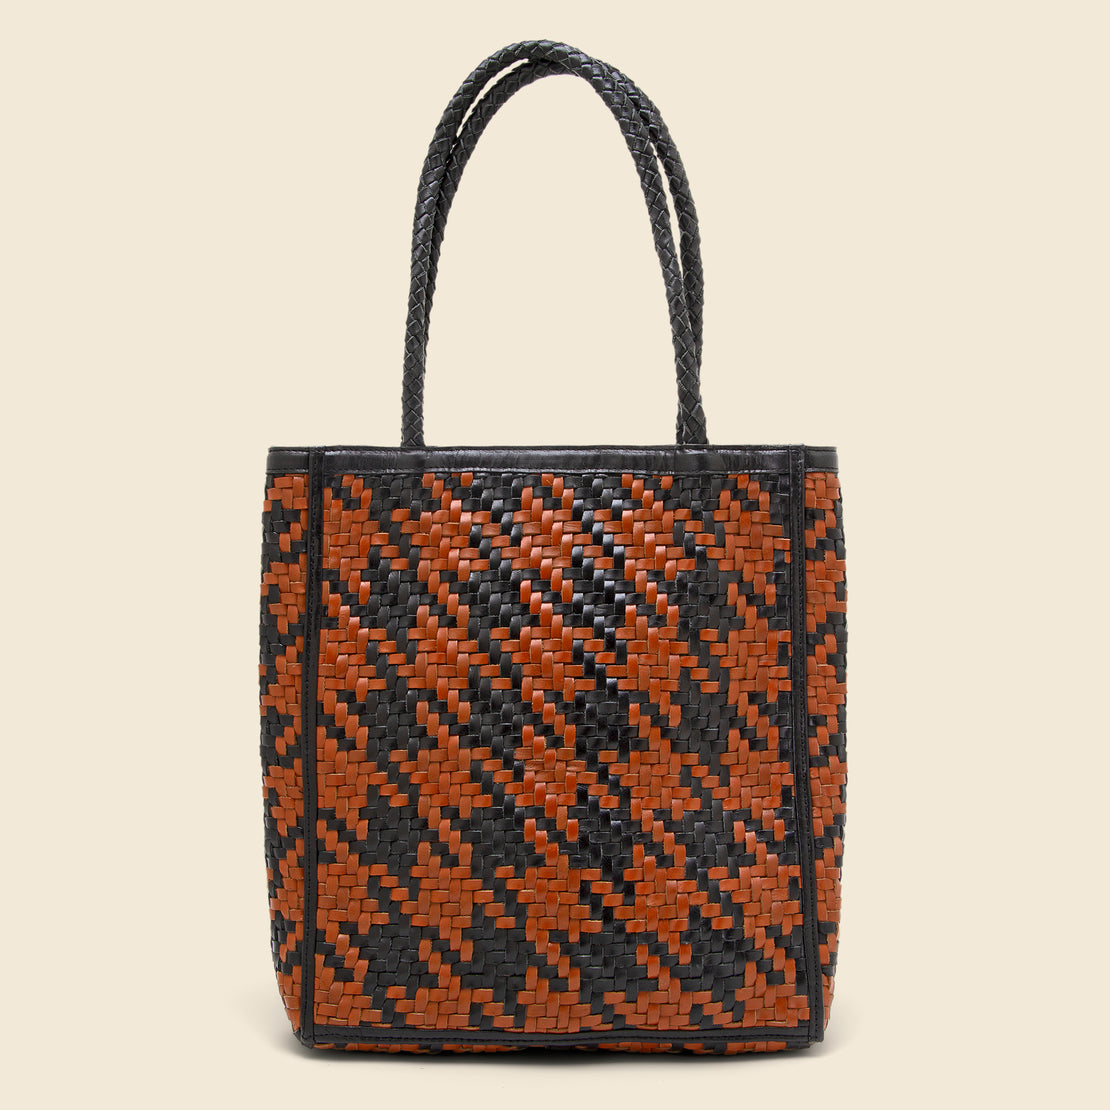 Bembien Le Tote - Black/Brown Houndstooth